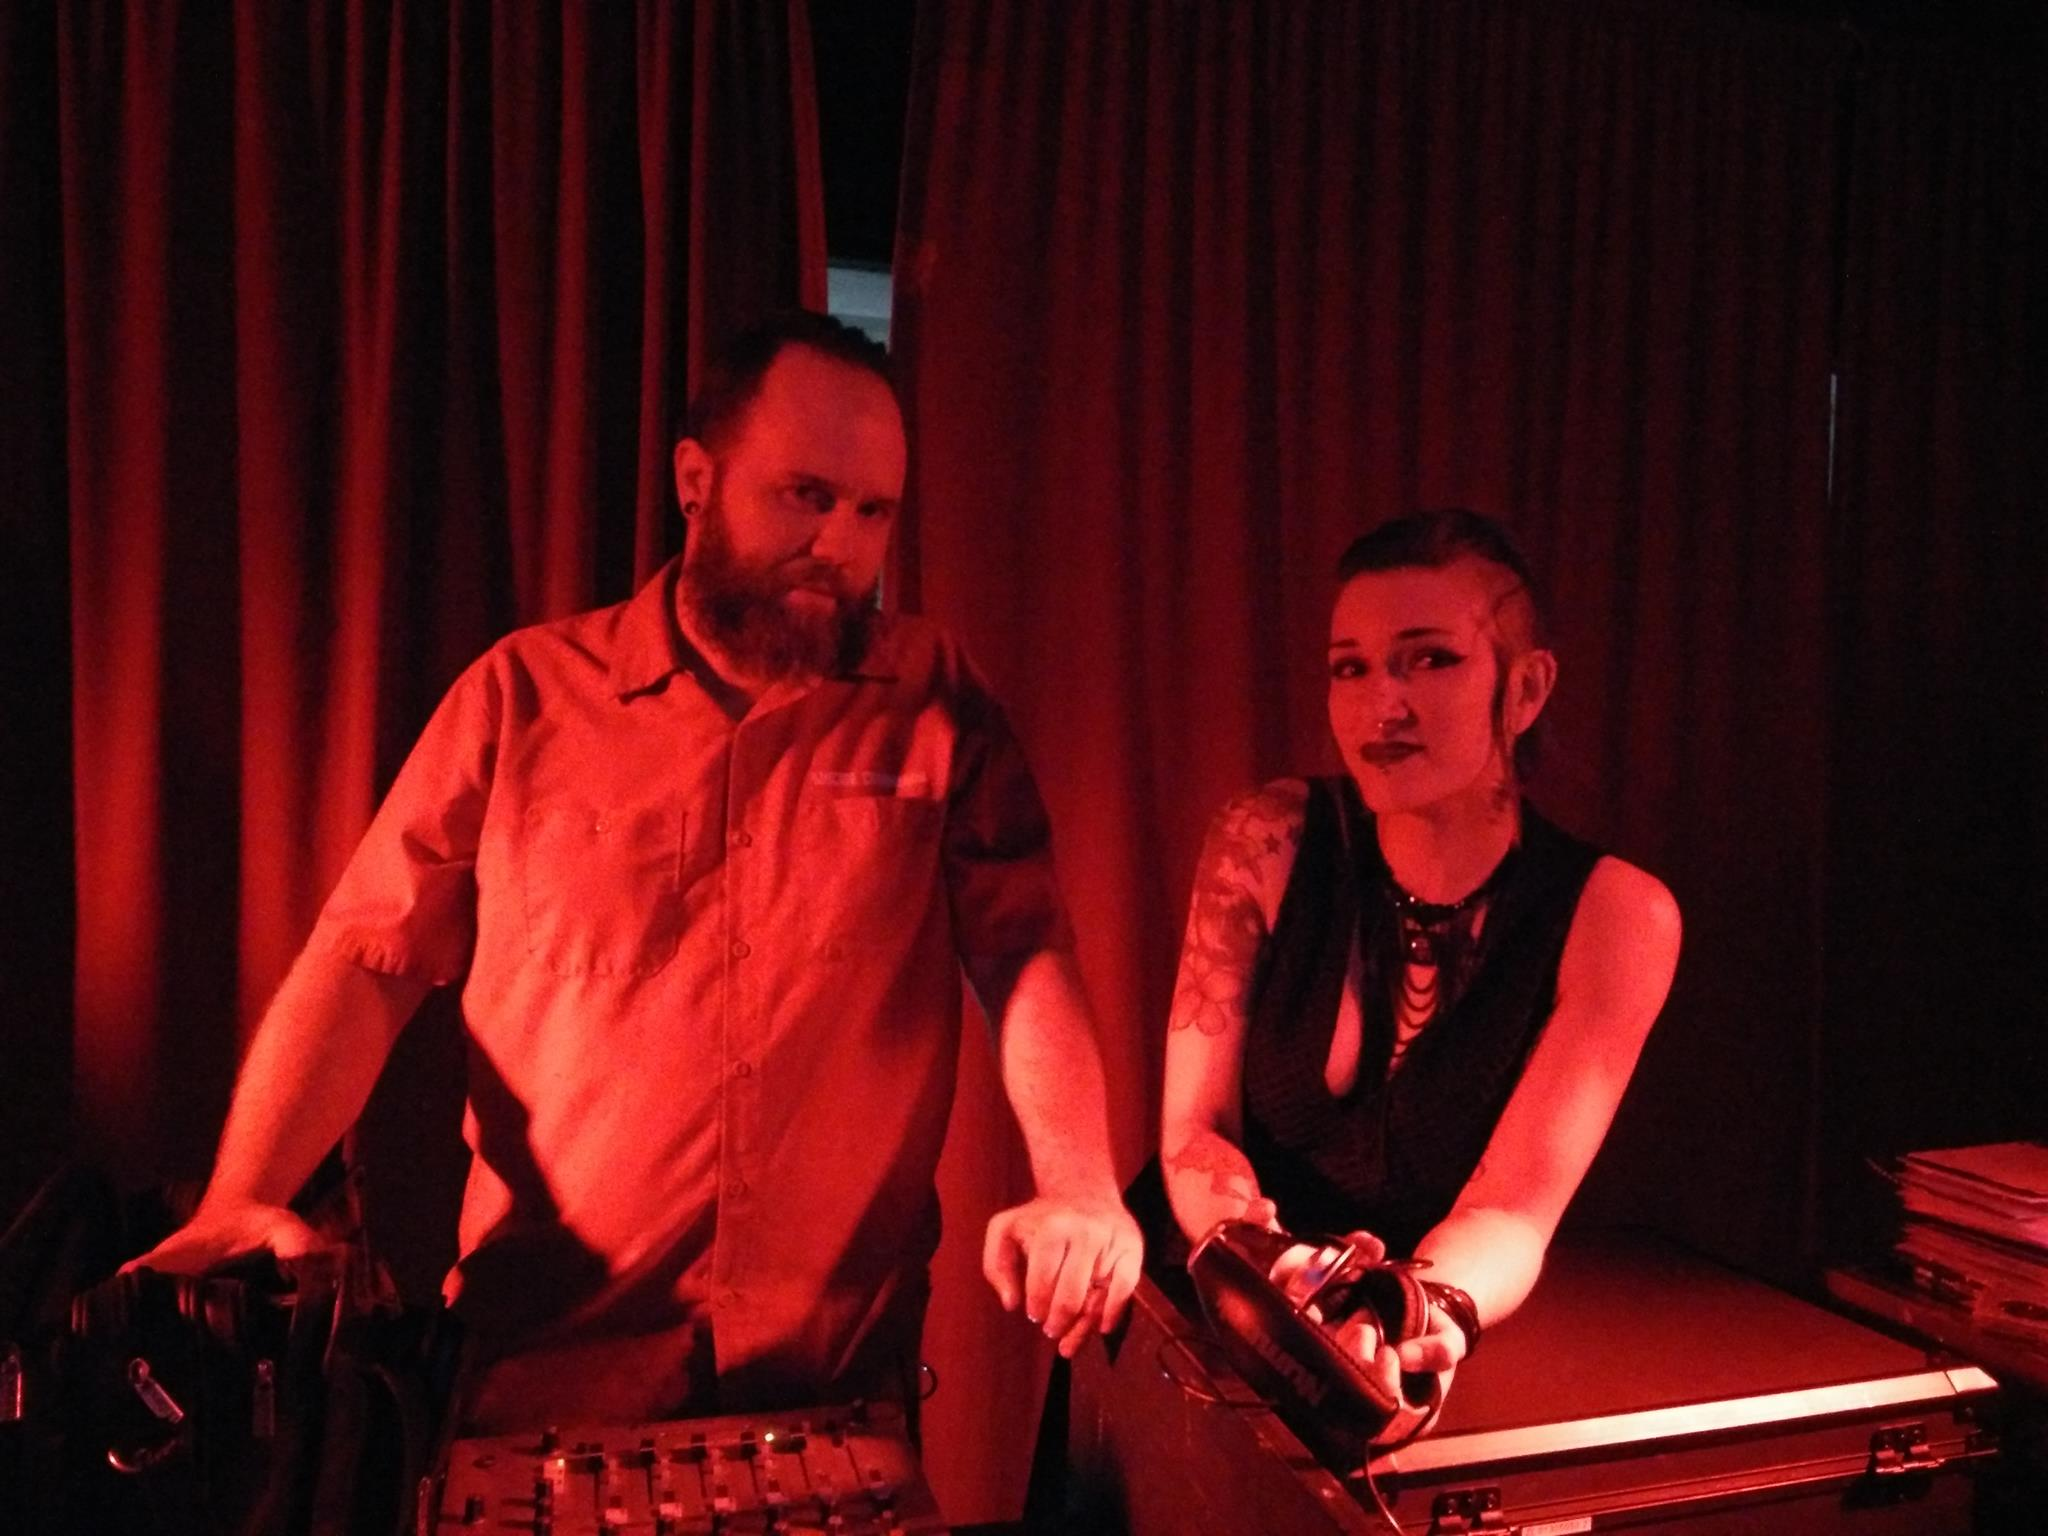 DJ the Wasteland on the left, DJ Mistress McCutchan on the right